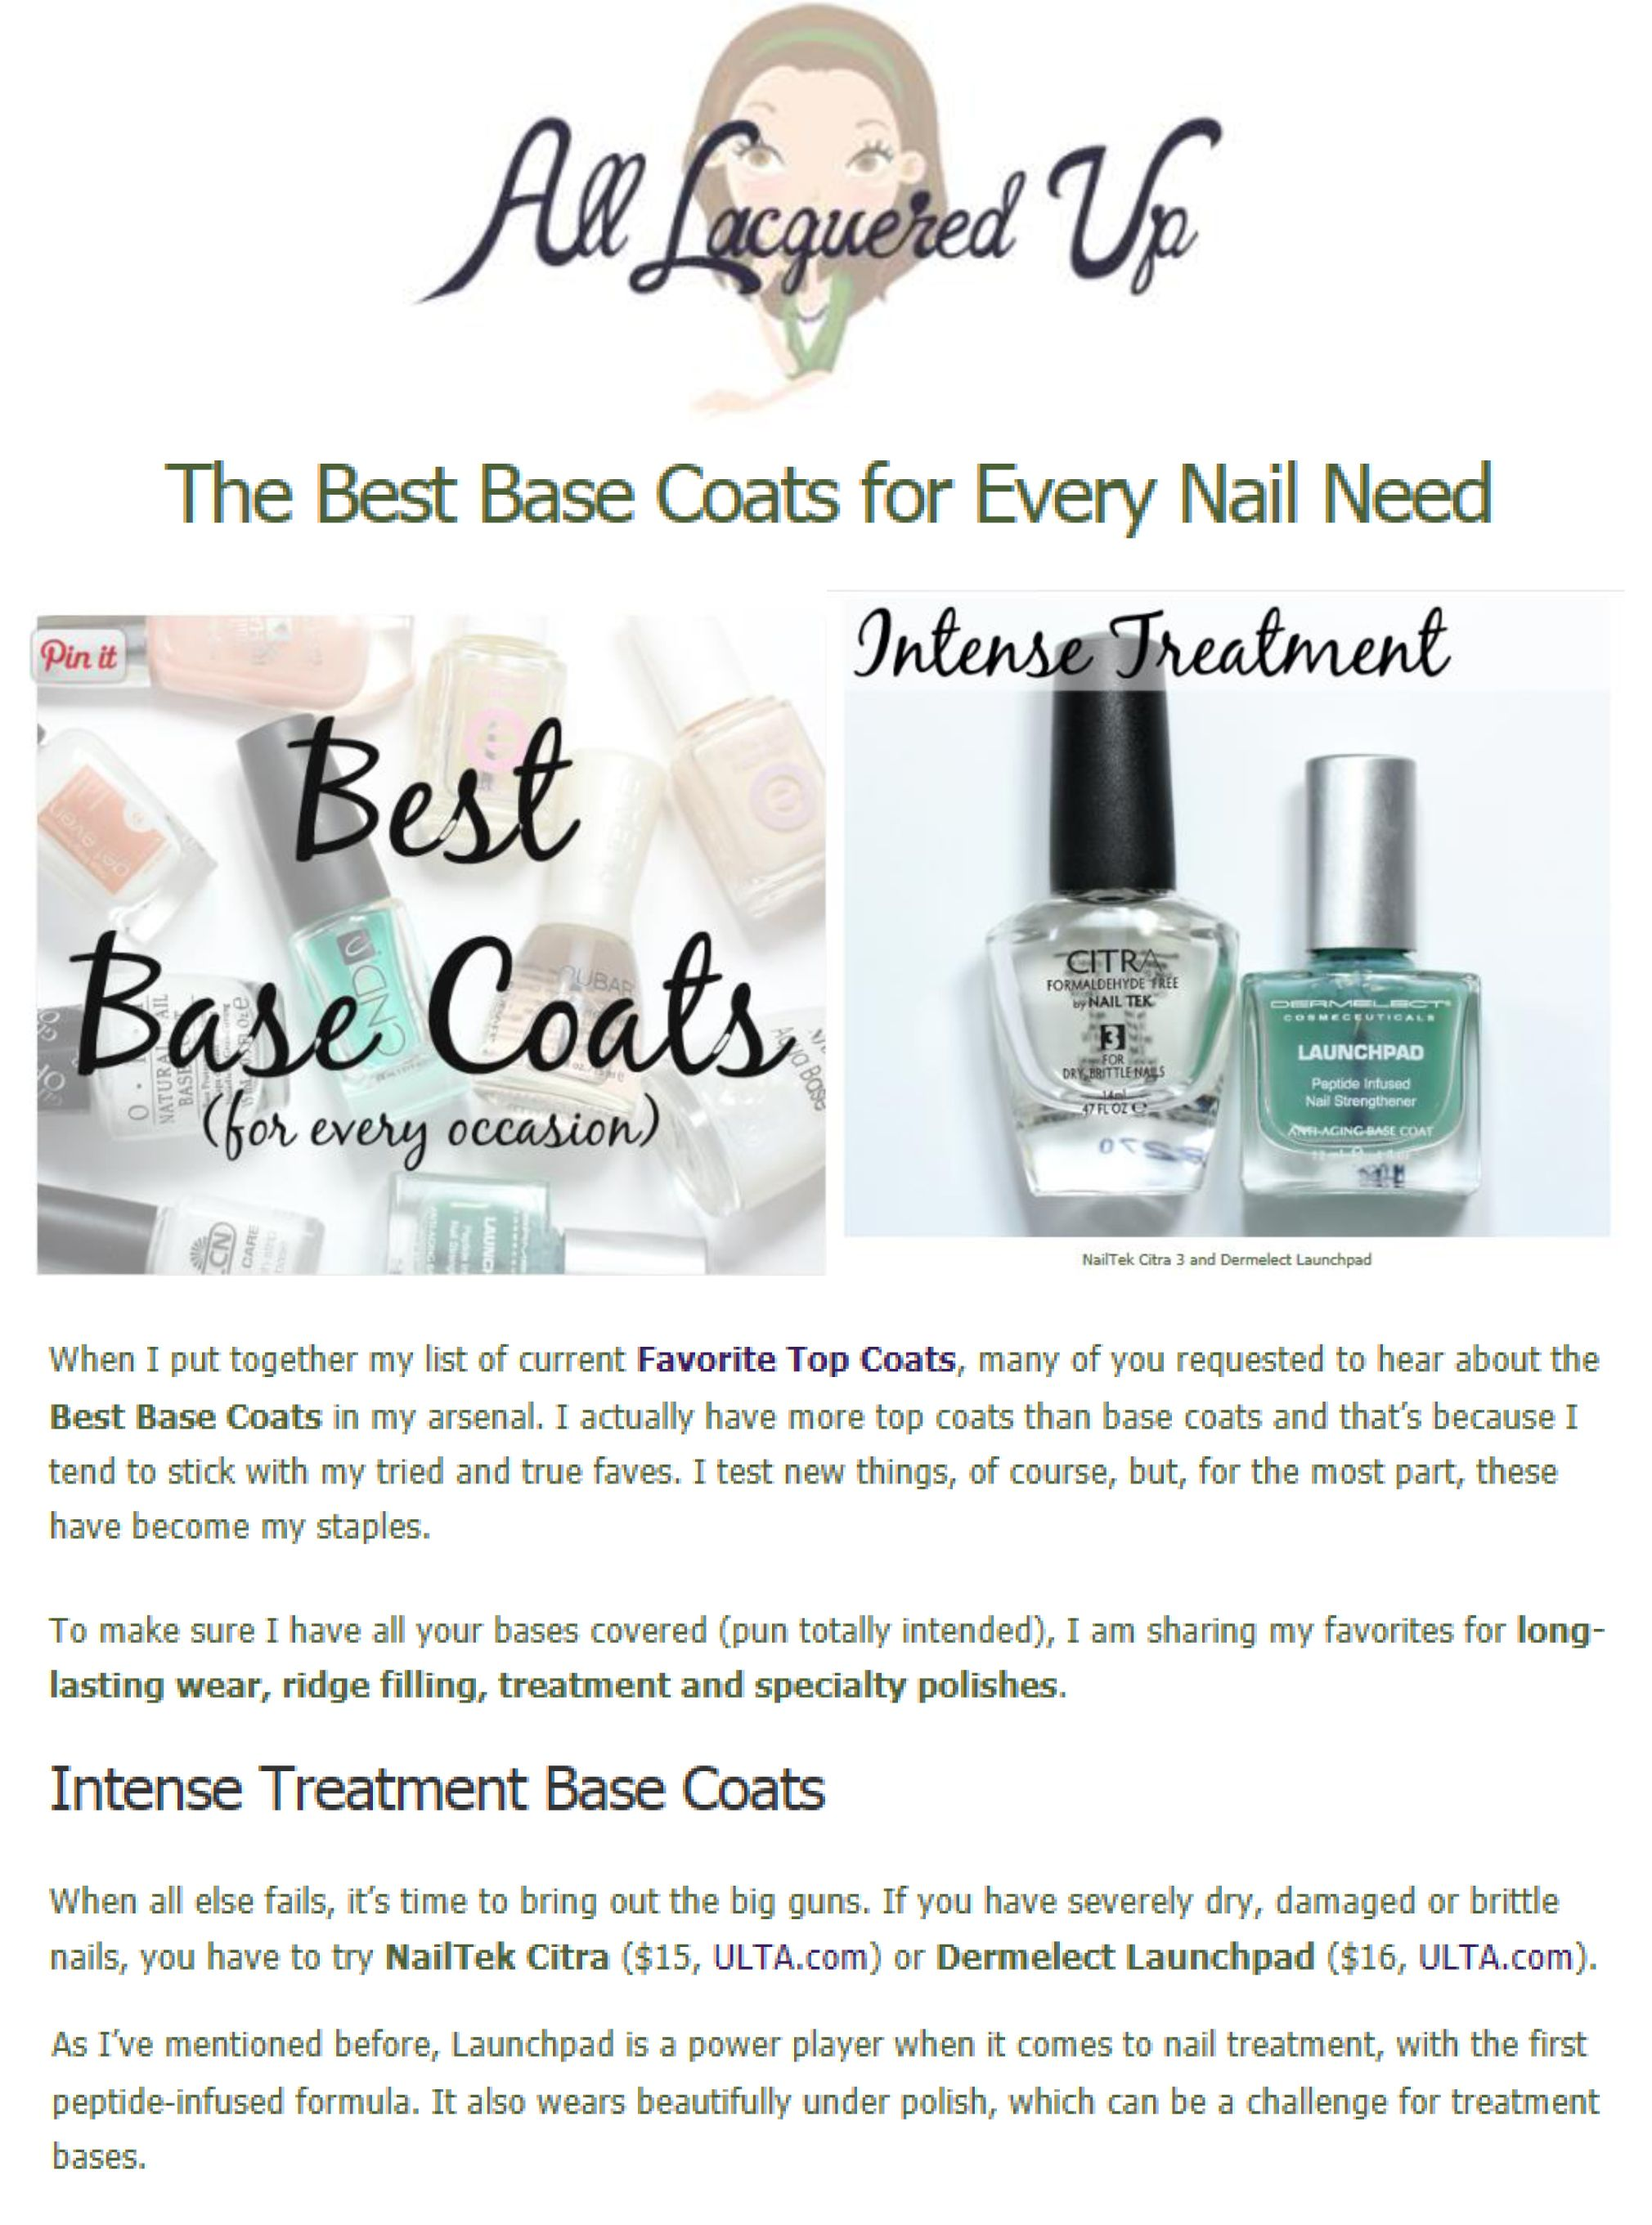 The Best Base Coats for Every Nail Need | Pedicures and Manicure